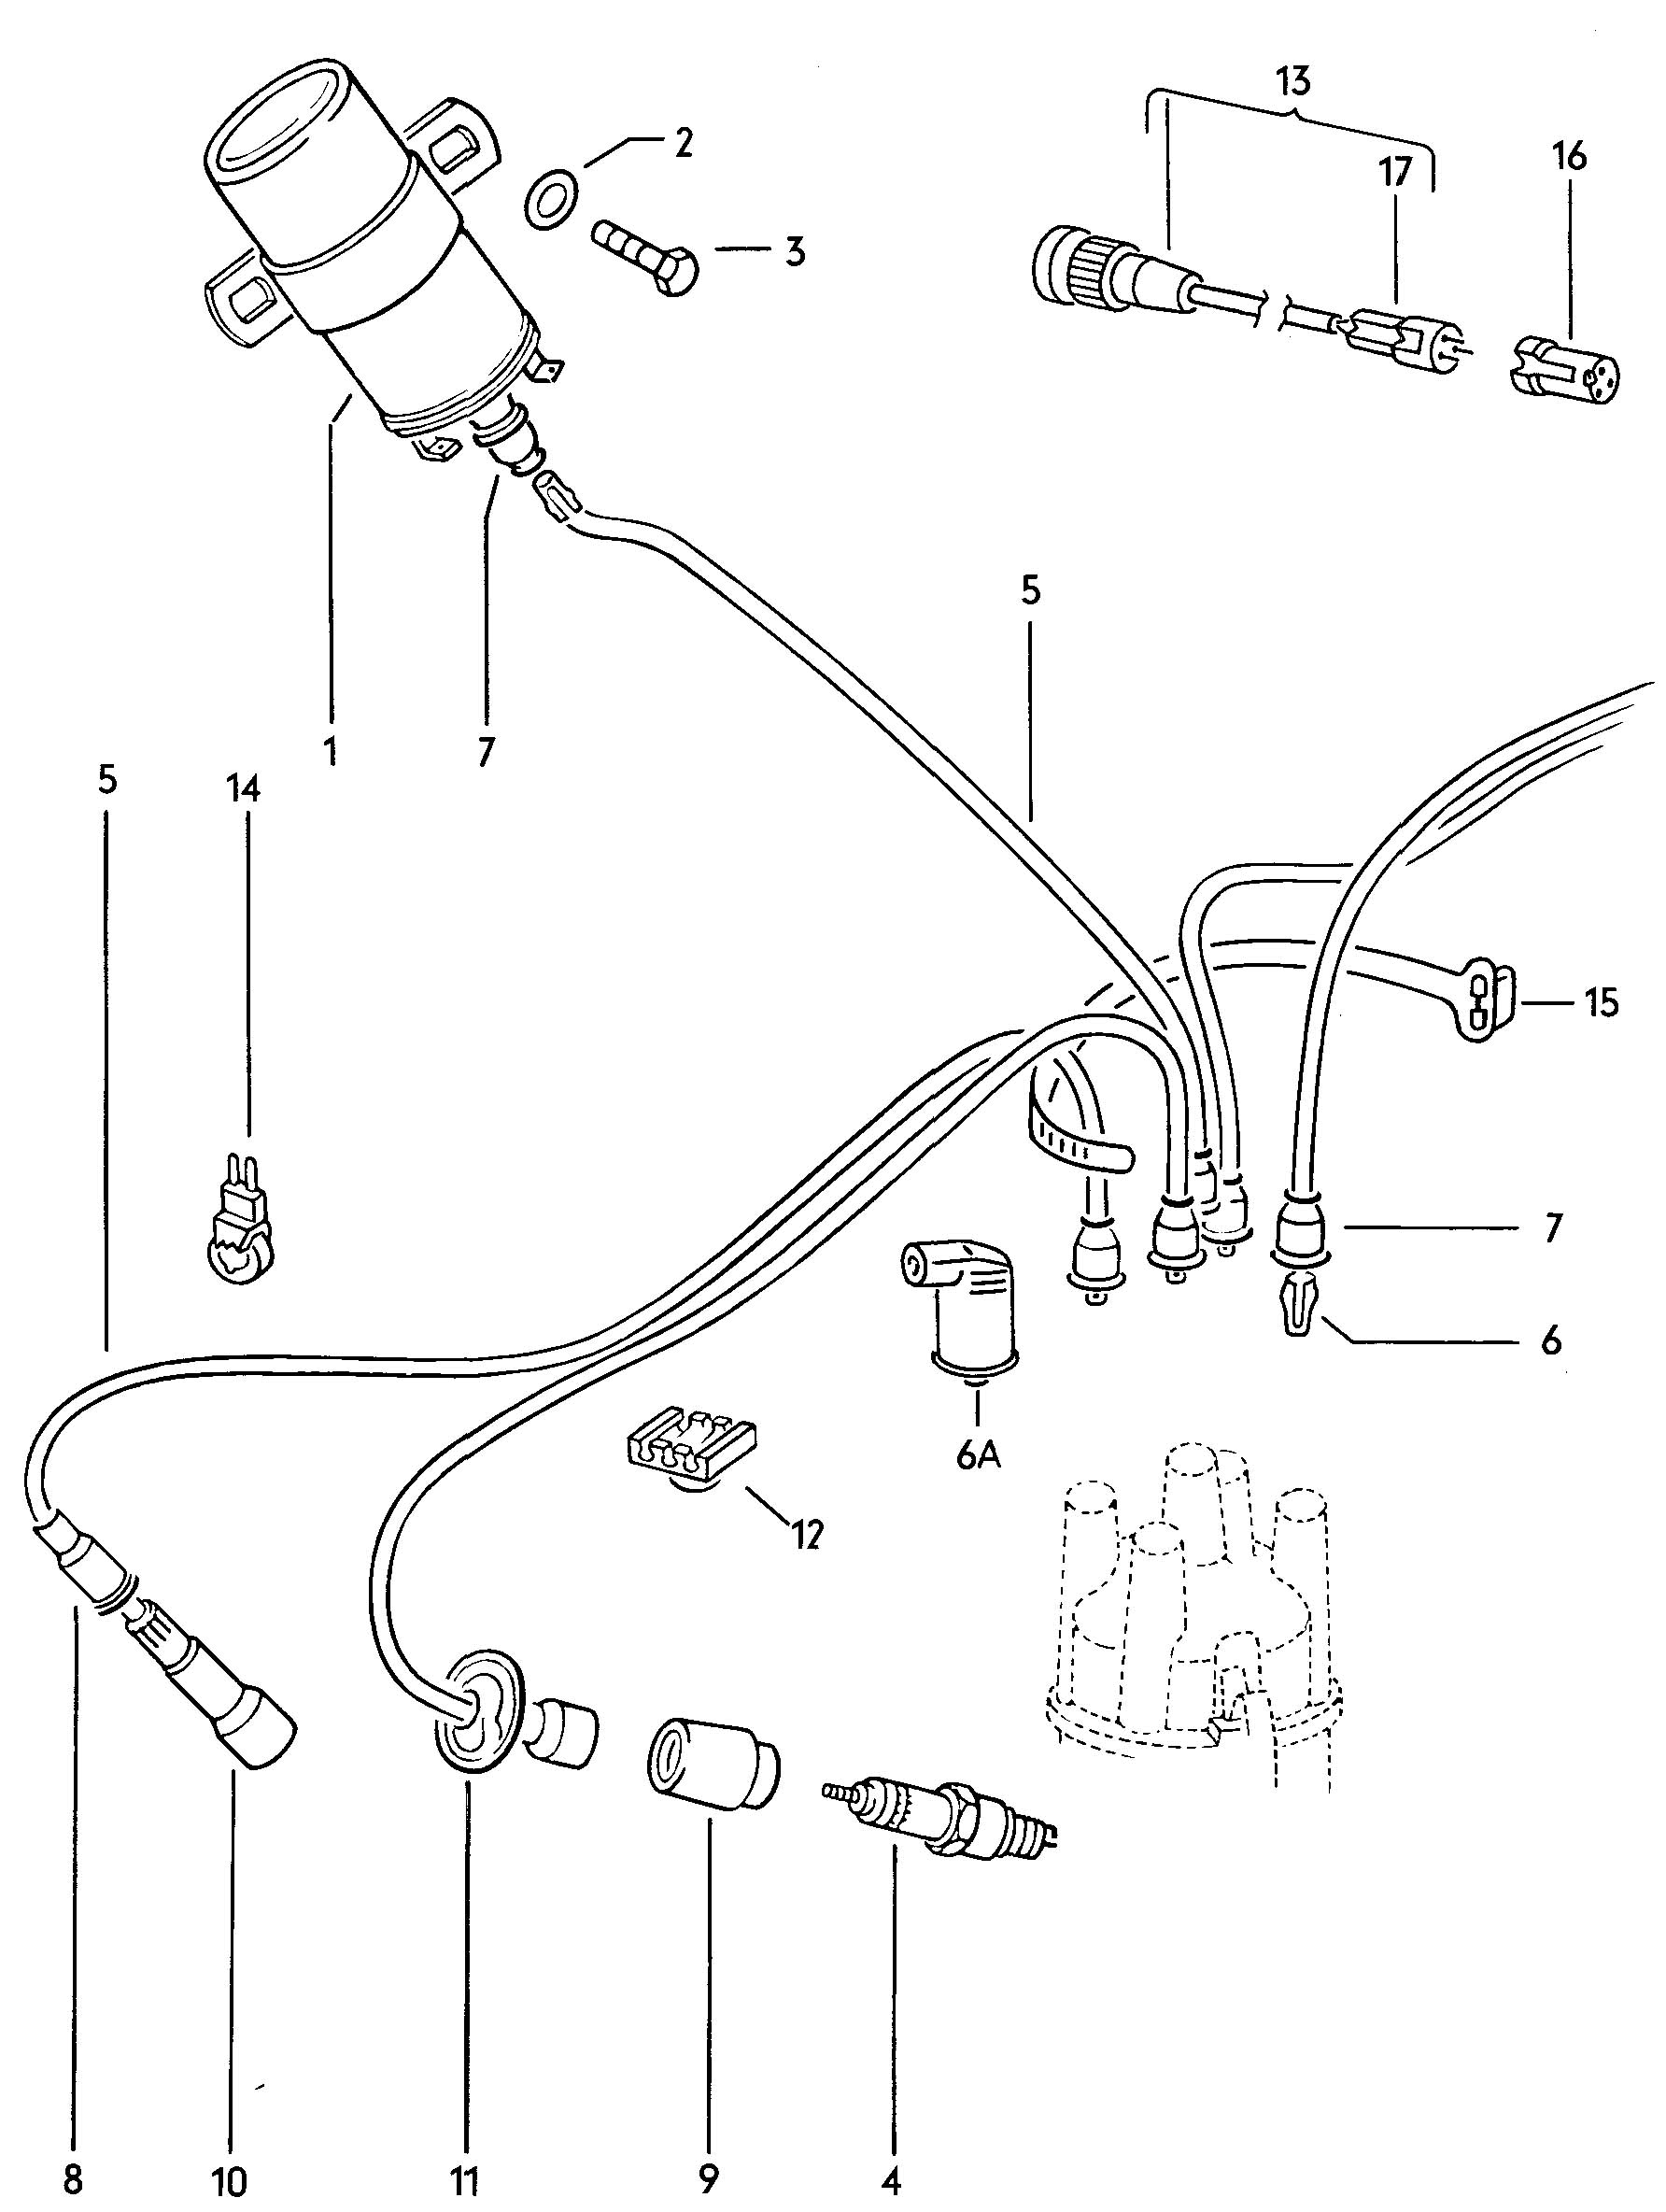 35 Vw Beetle Ignition Coil Wiring Diagram